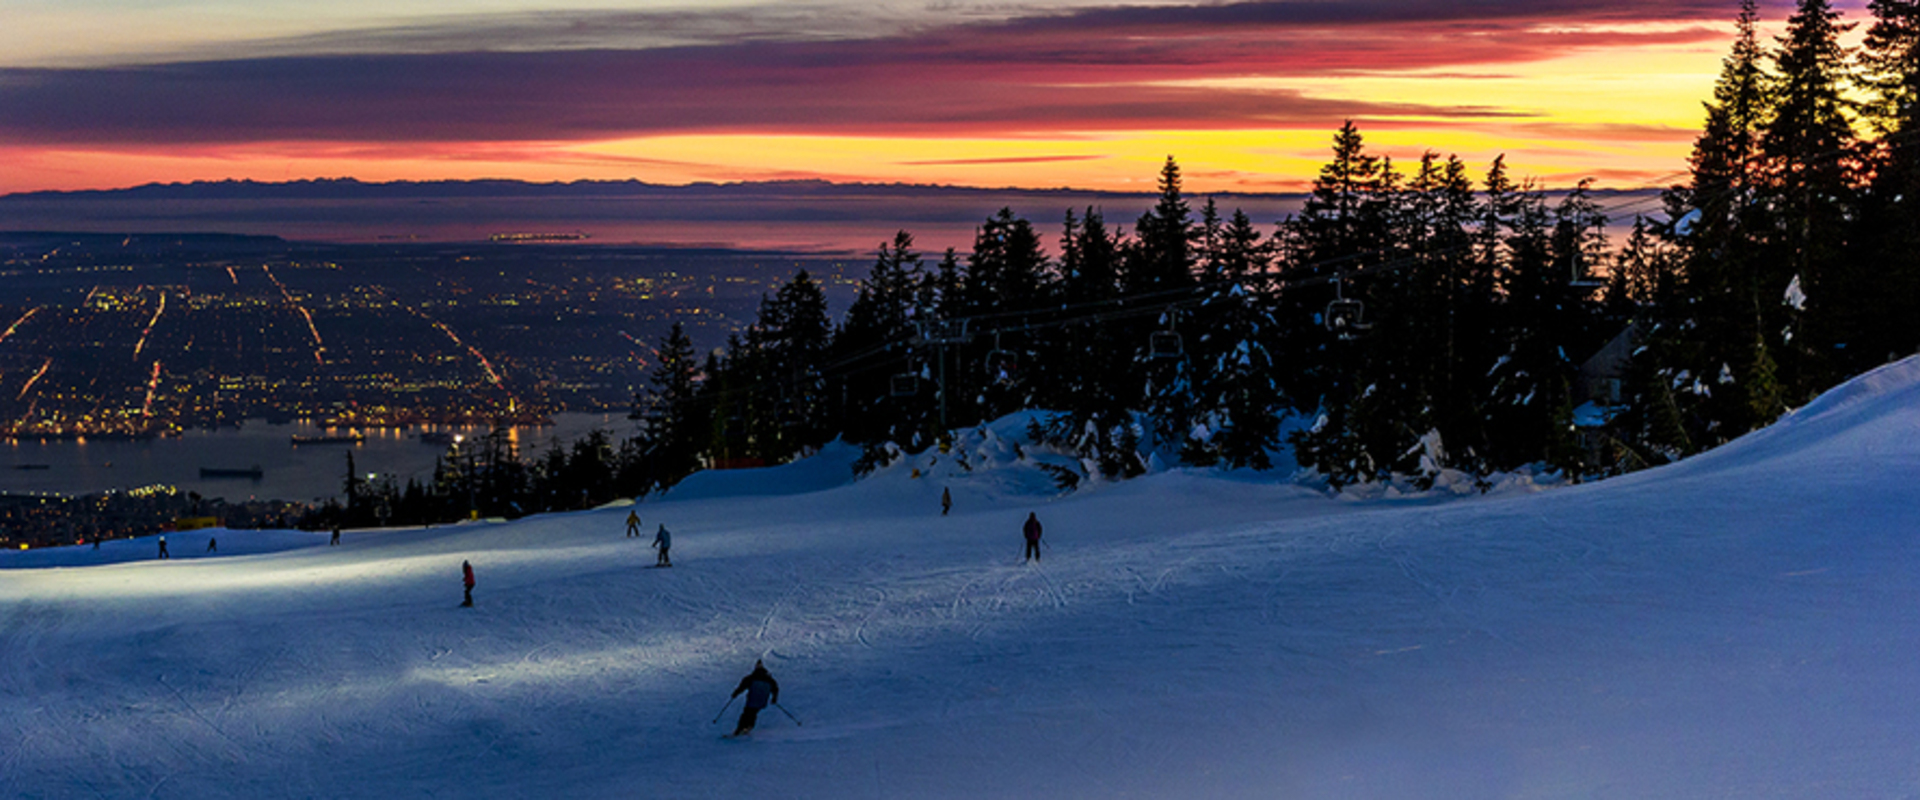 black friday special offer - night rider 3-pack | grouse mountain